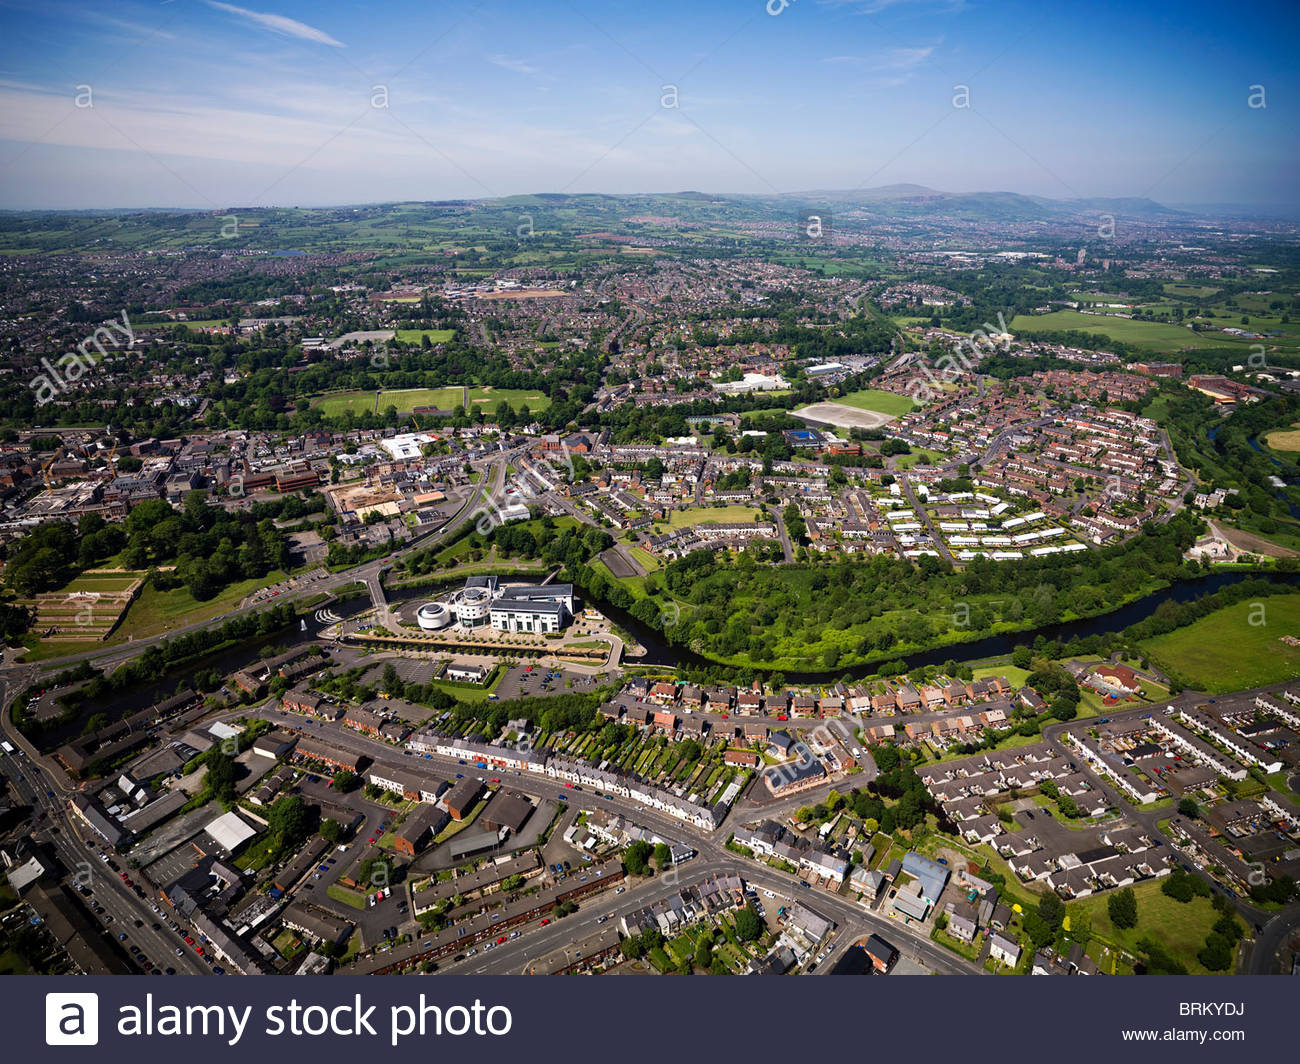 Aerial view of the city of Lisburn and the Island Civic Centre - Stock Image